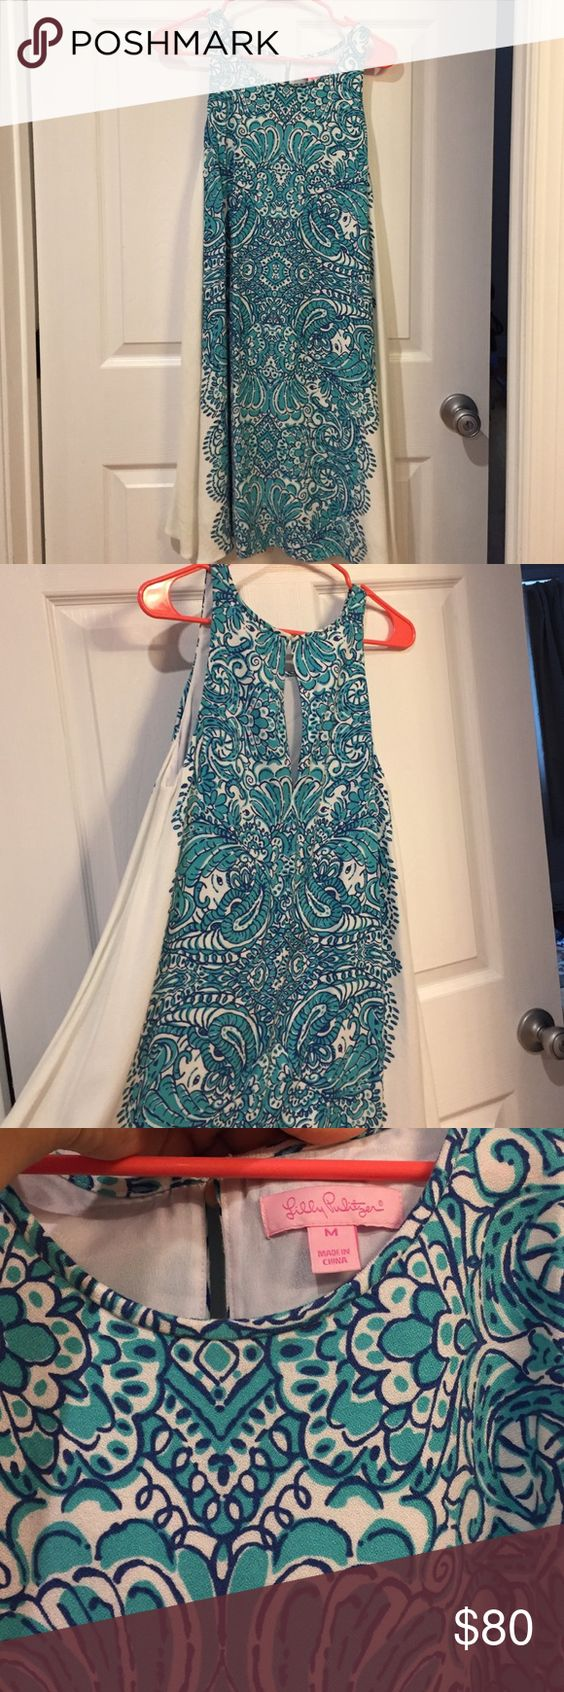 Size Medium Lilly Pulitzer dress Size medium dress from Lilly Pulitzer. I cannot think of the name of this print lol. I wore it once but completely forgot I owned it. Very comfortable! Accepting offers! Lilly Pulitzer Dresses Midi